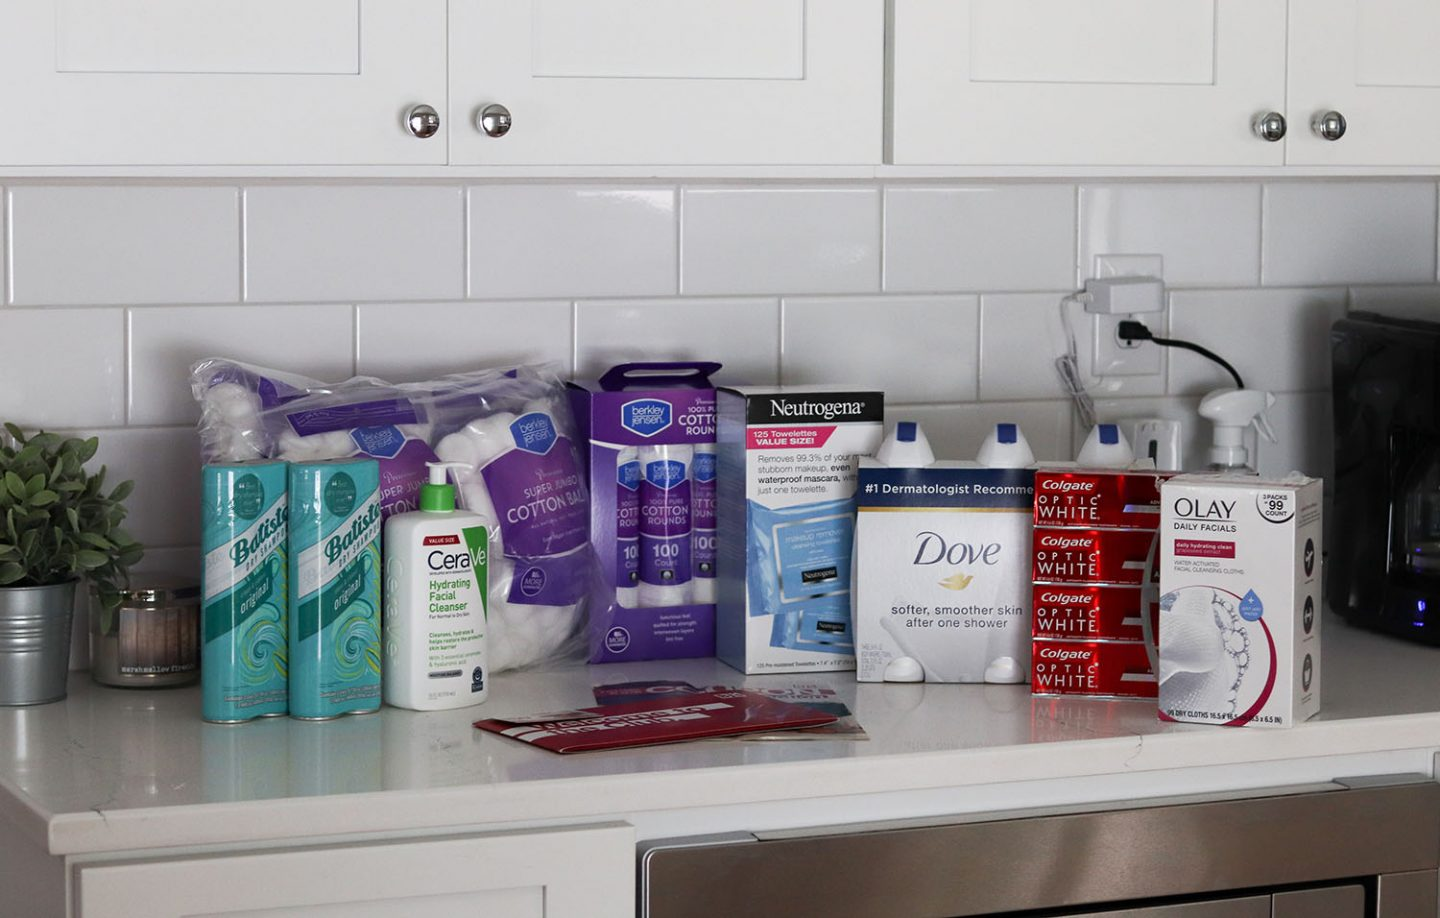 Health and Beauty Essentials at BJ's Wholesale Club   Batiste Dry Shampoo, CeraVe Hydrating Facial Cleanser, Neutrogena Makeup Removing Wipes, Dove Body Wash wholesale prices   Brighter Darling Blog